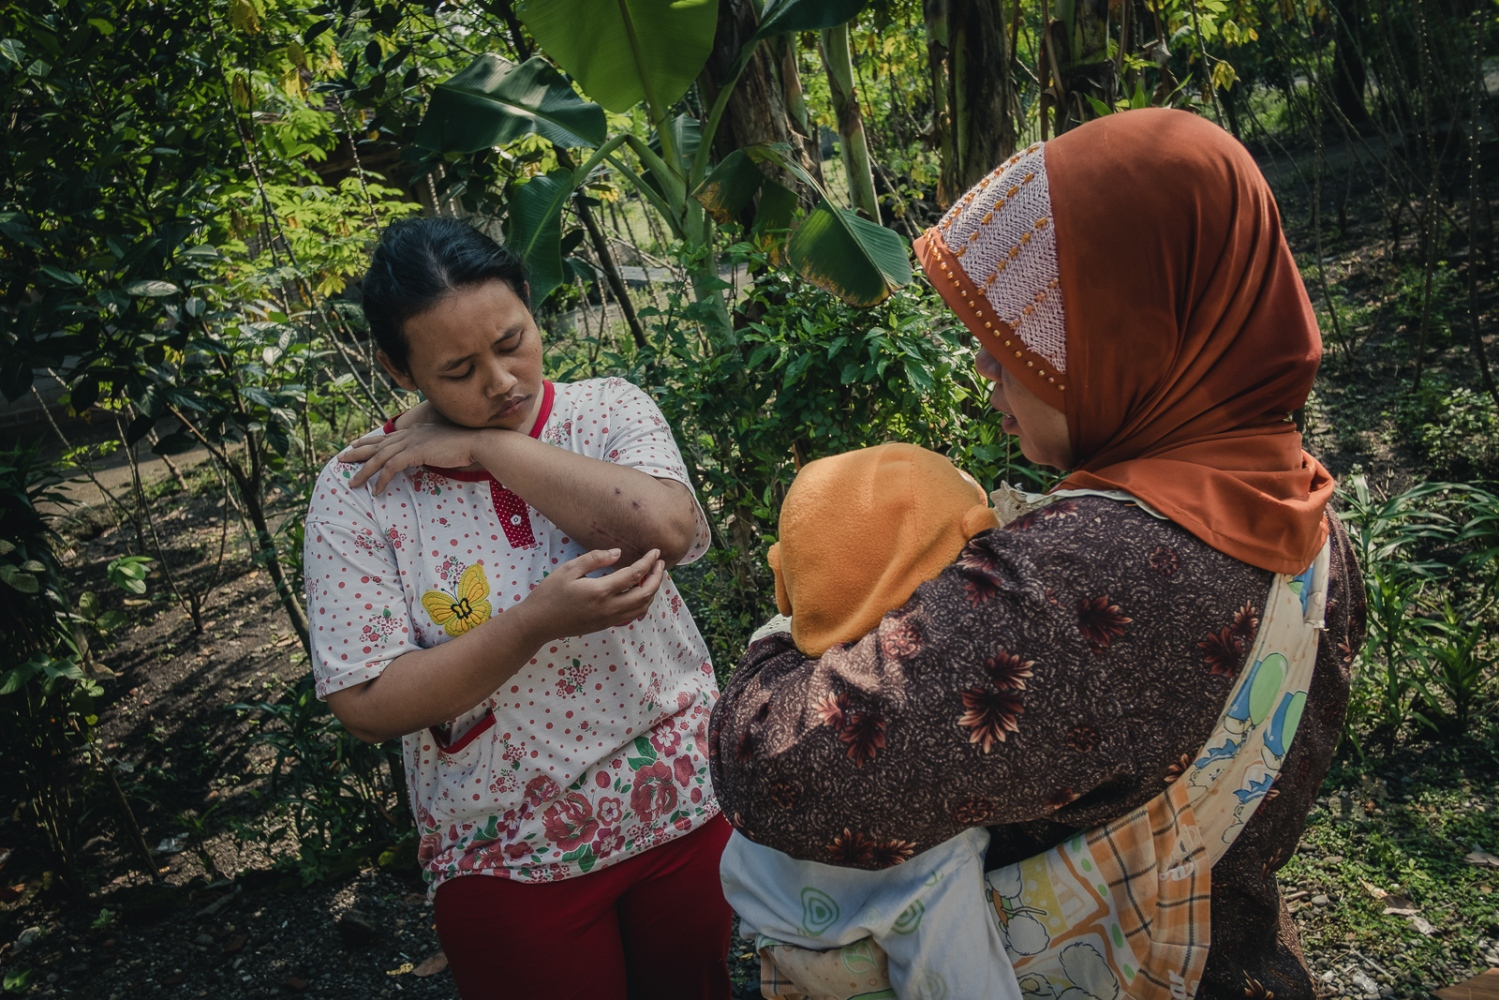 Indonesia, 2016. Nina Duwi Koriah talks with a neighbour outside her family home in the village of Winong near the town of Ngawi, East Java. Nina lives here with her husband, her two children, her father and her two brothers. Now back in Indonesia after her accident in Singapore, where she was employed as a domestic worker, she is staying with her family until she is well enough to work. She intends to stay near home, and look for work in the town of Ngawi, possibly as a sales assistant.